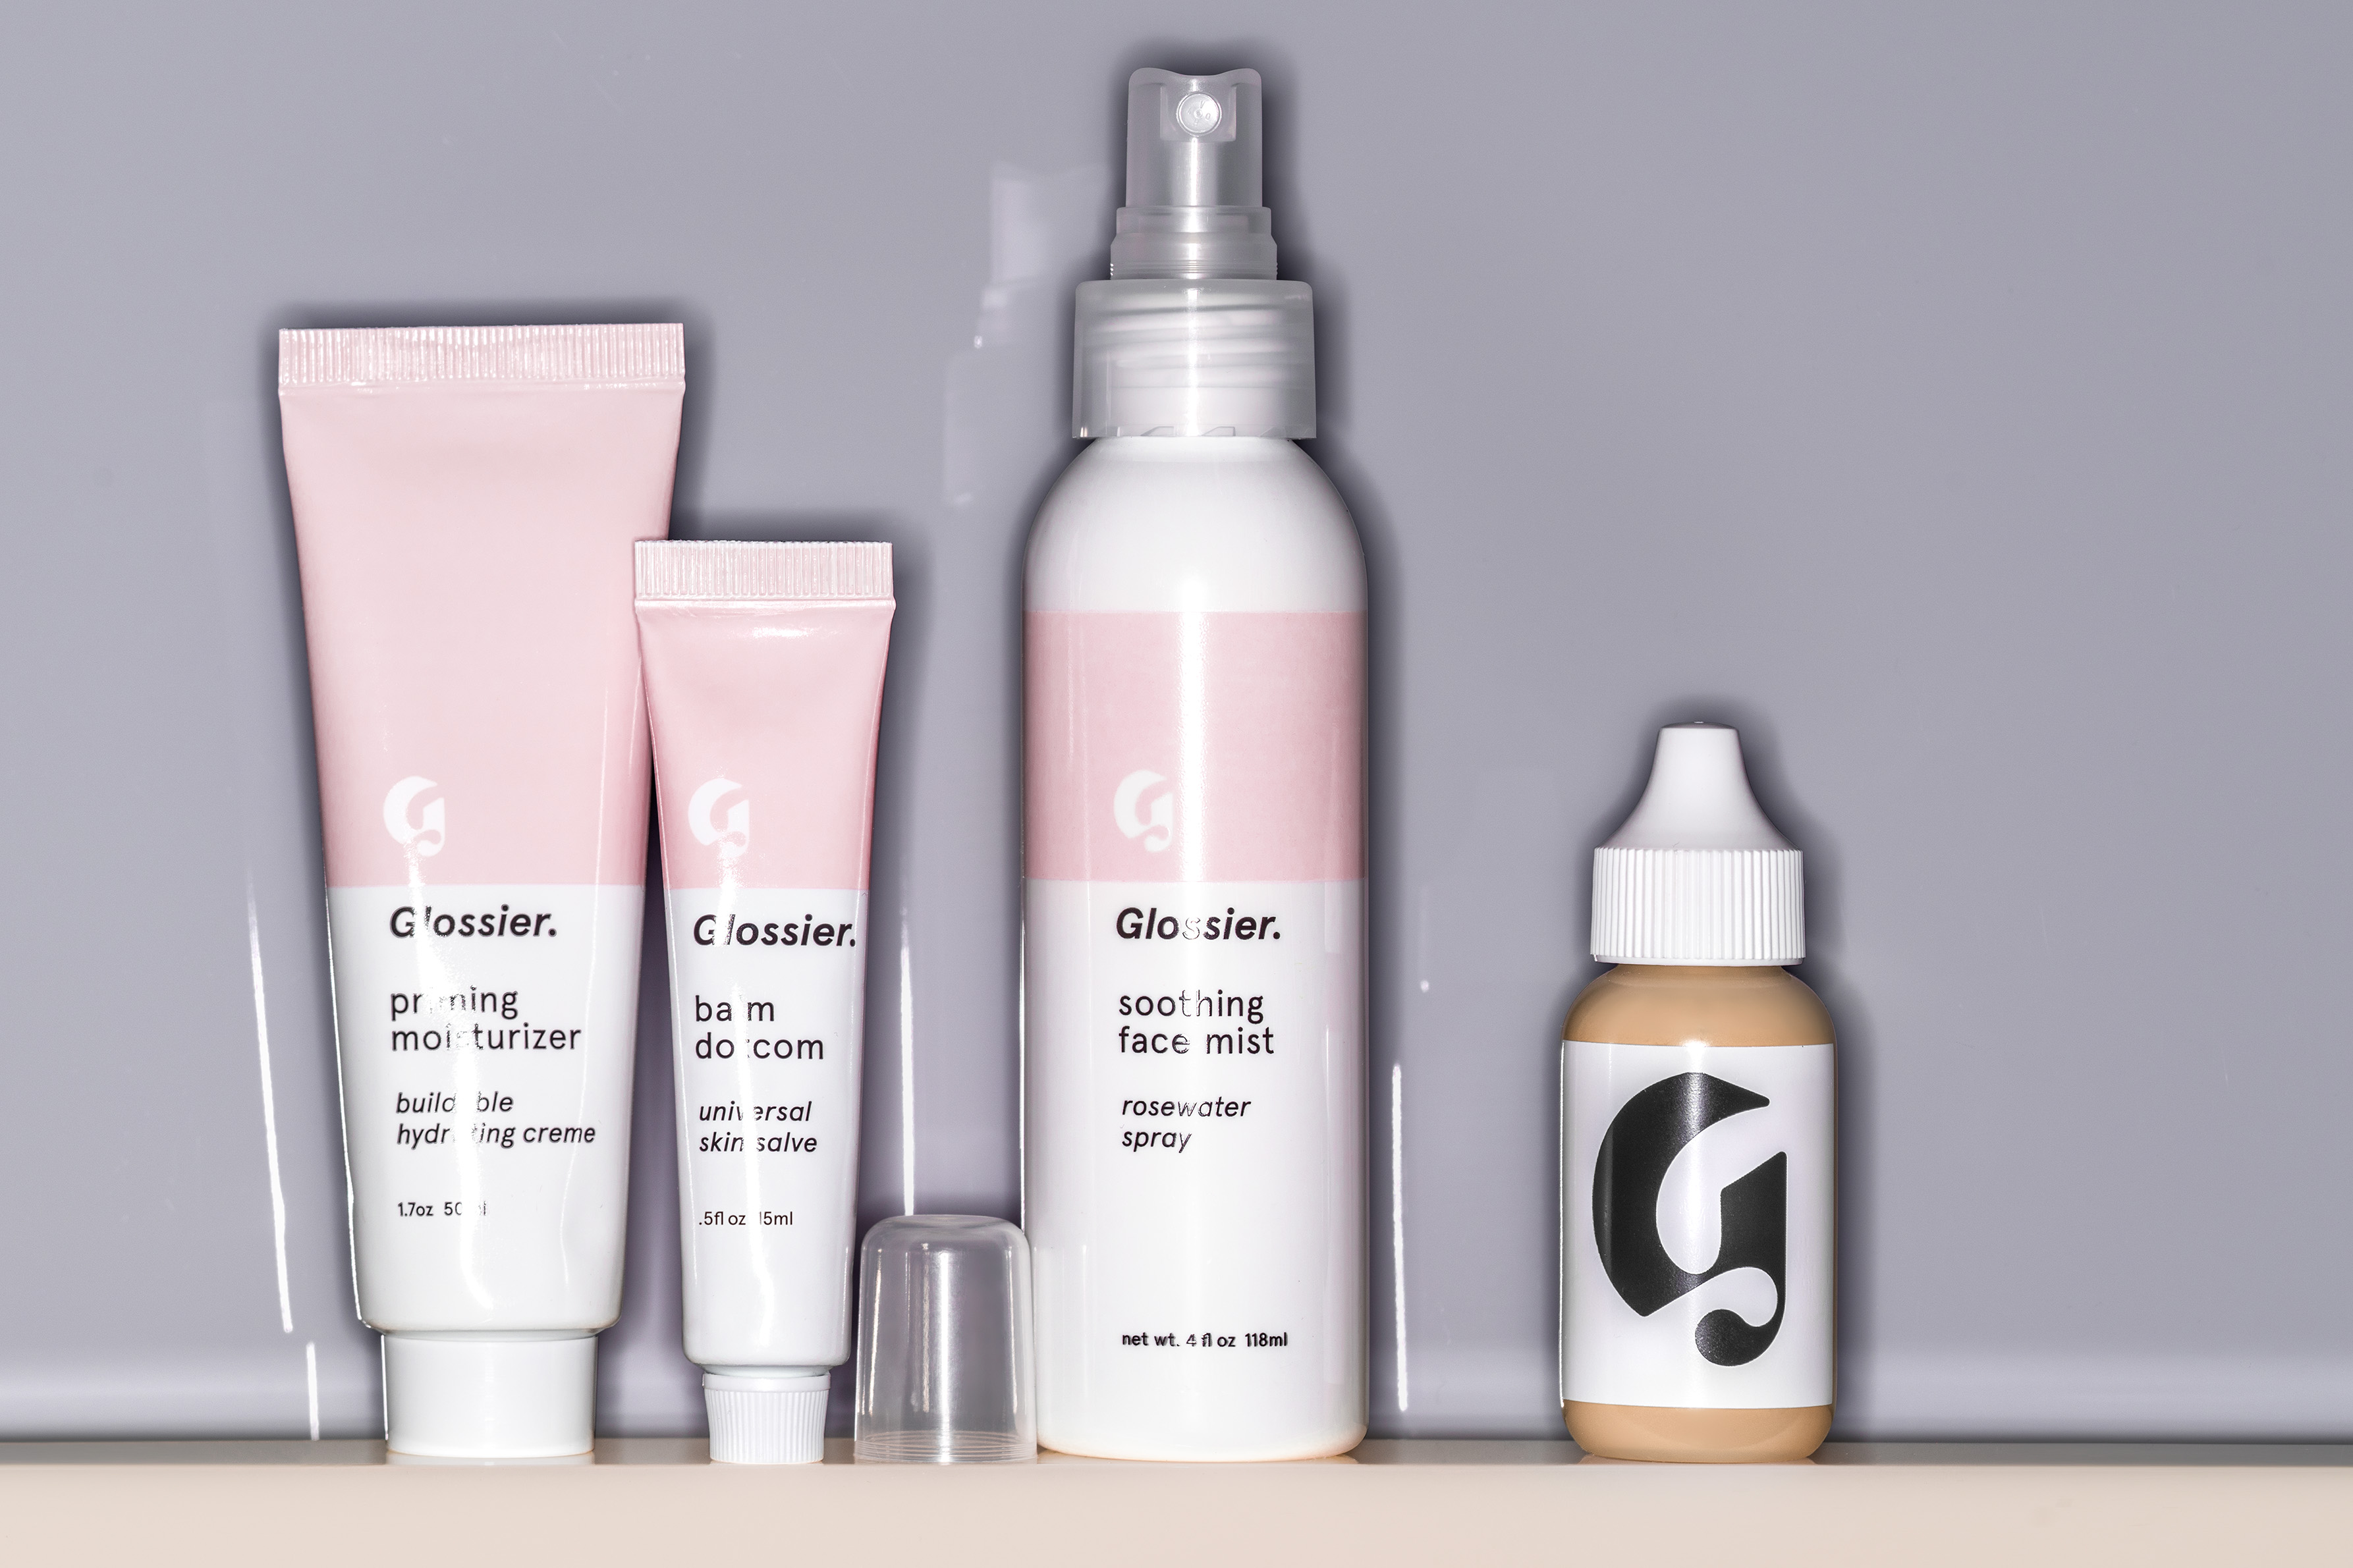 10 Nyc In Beauty Brands To Know